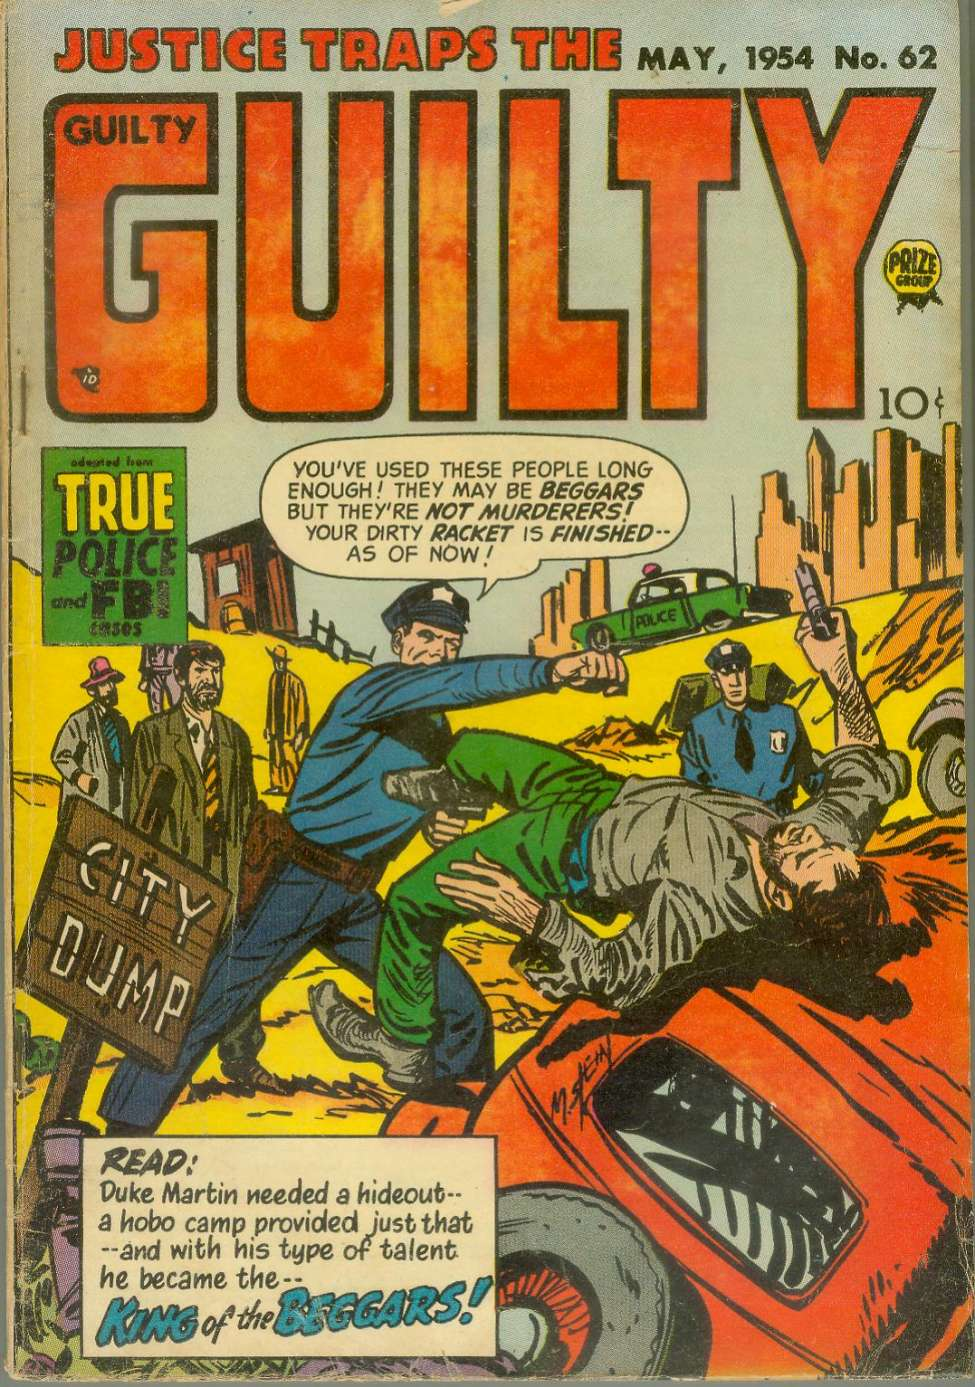 Comic Book Cover For Justice Traps the Guilty v7 8 (62)